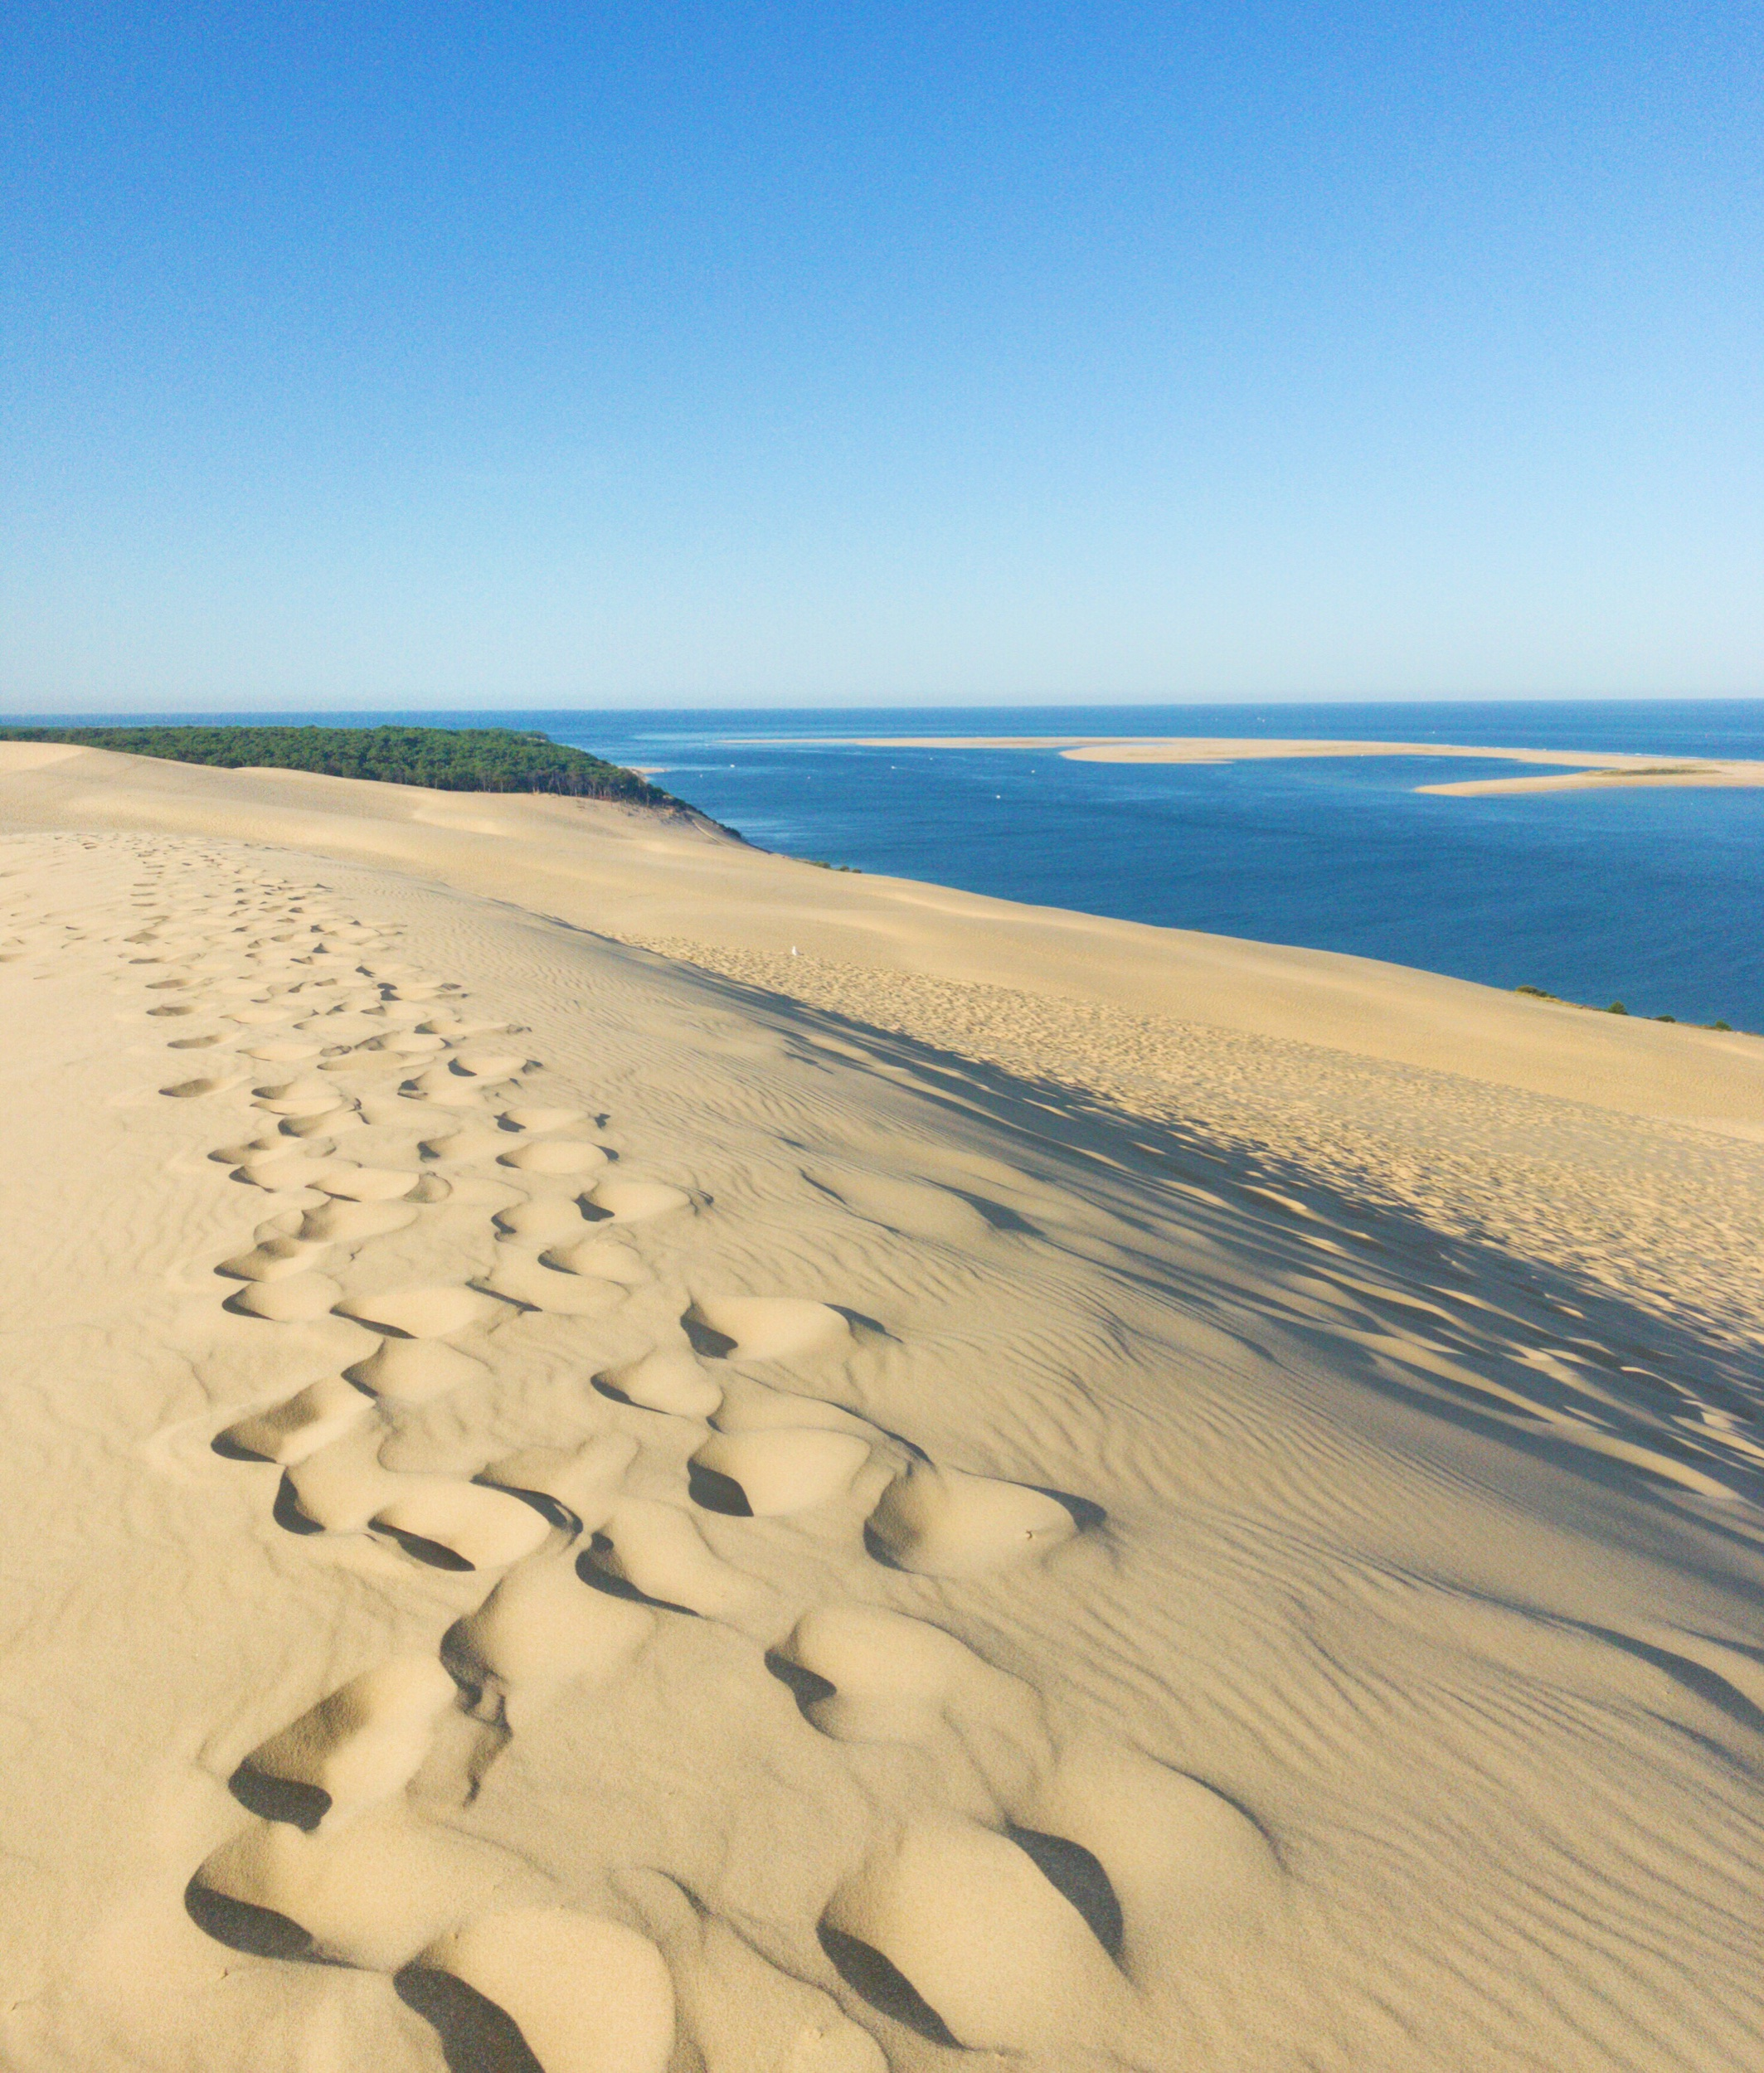 - Arcachon, definitely this one of a kind combination of what natures could offer at its best.Close to Landes Forest, the biggest artificial forest in Europe.Overlooked by the Dune du Pilat, tallest sand dune in Europe.Enclosing the Bassin d'Arcachon, a water area where Paris could fit in.